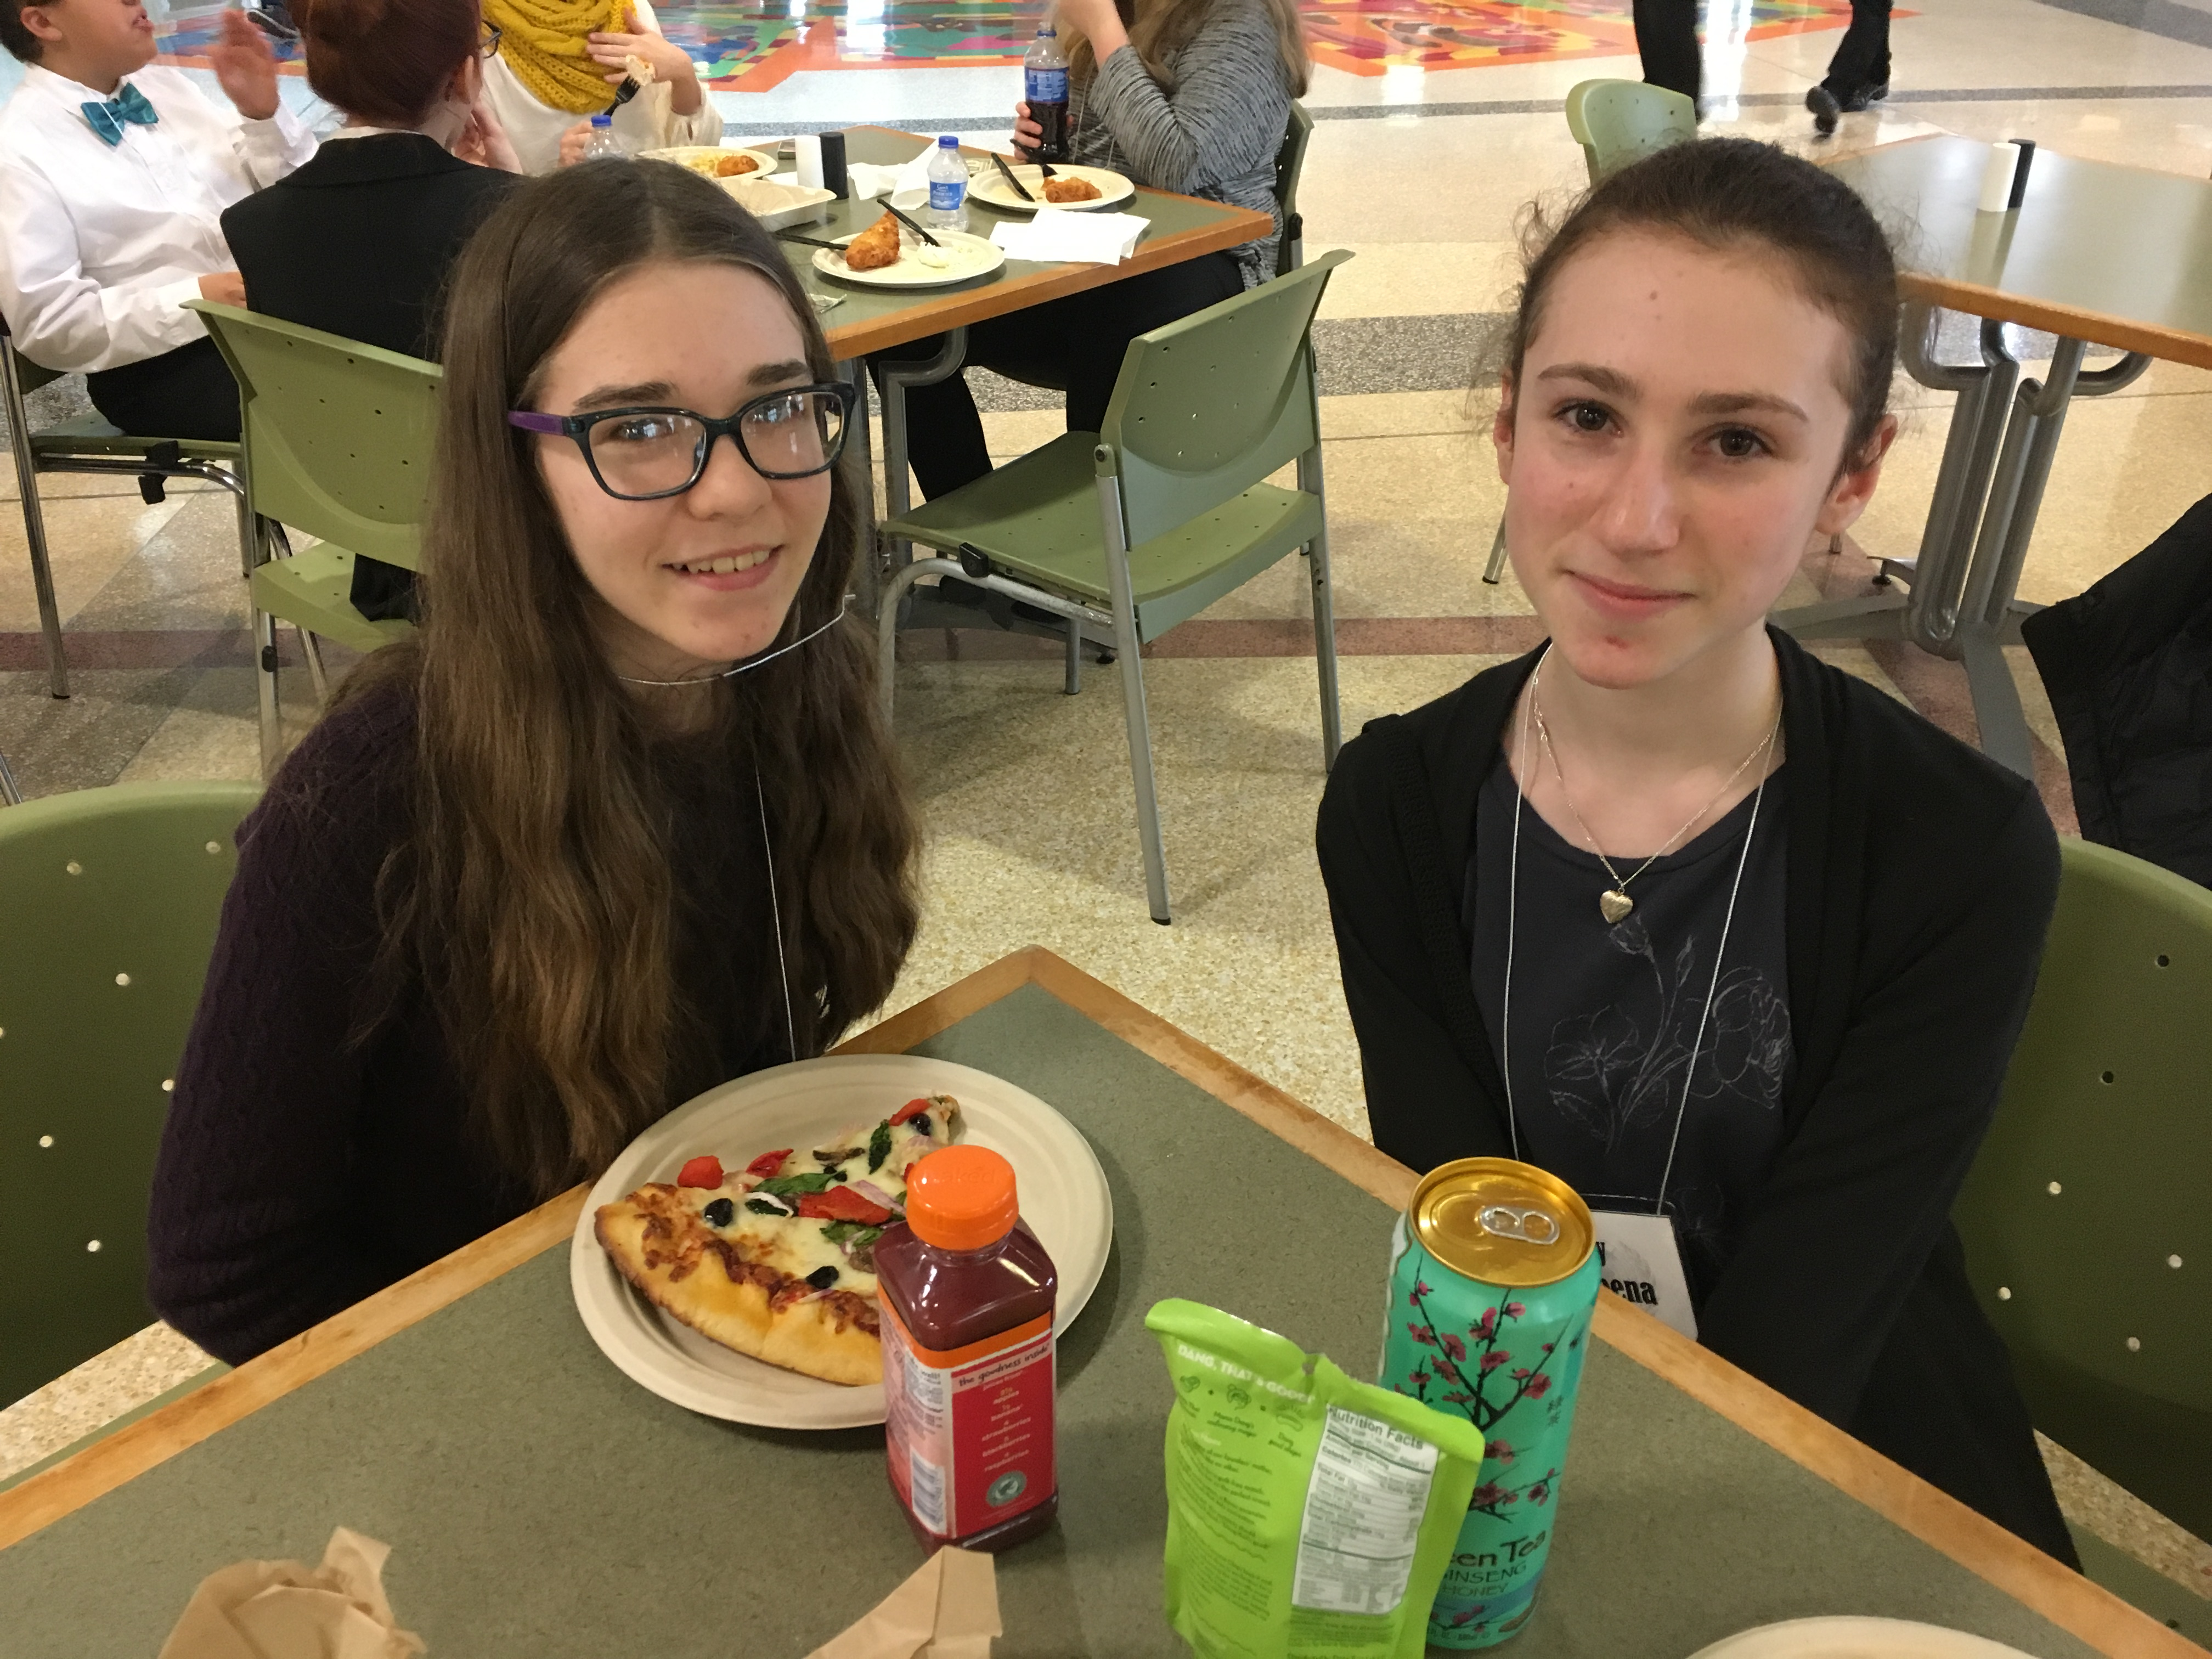 Athens scholars dine at Ohio University Baker Center during Model UN